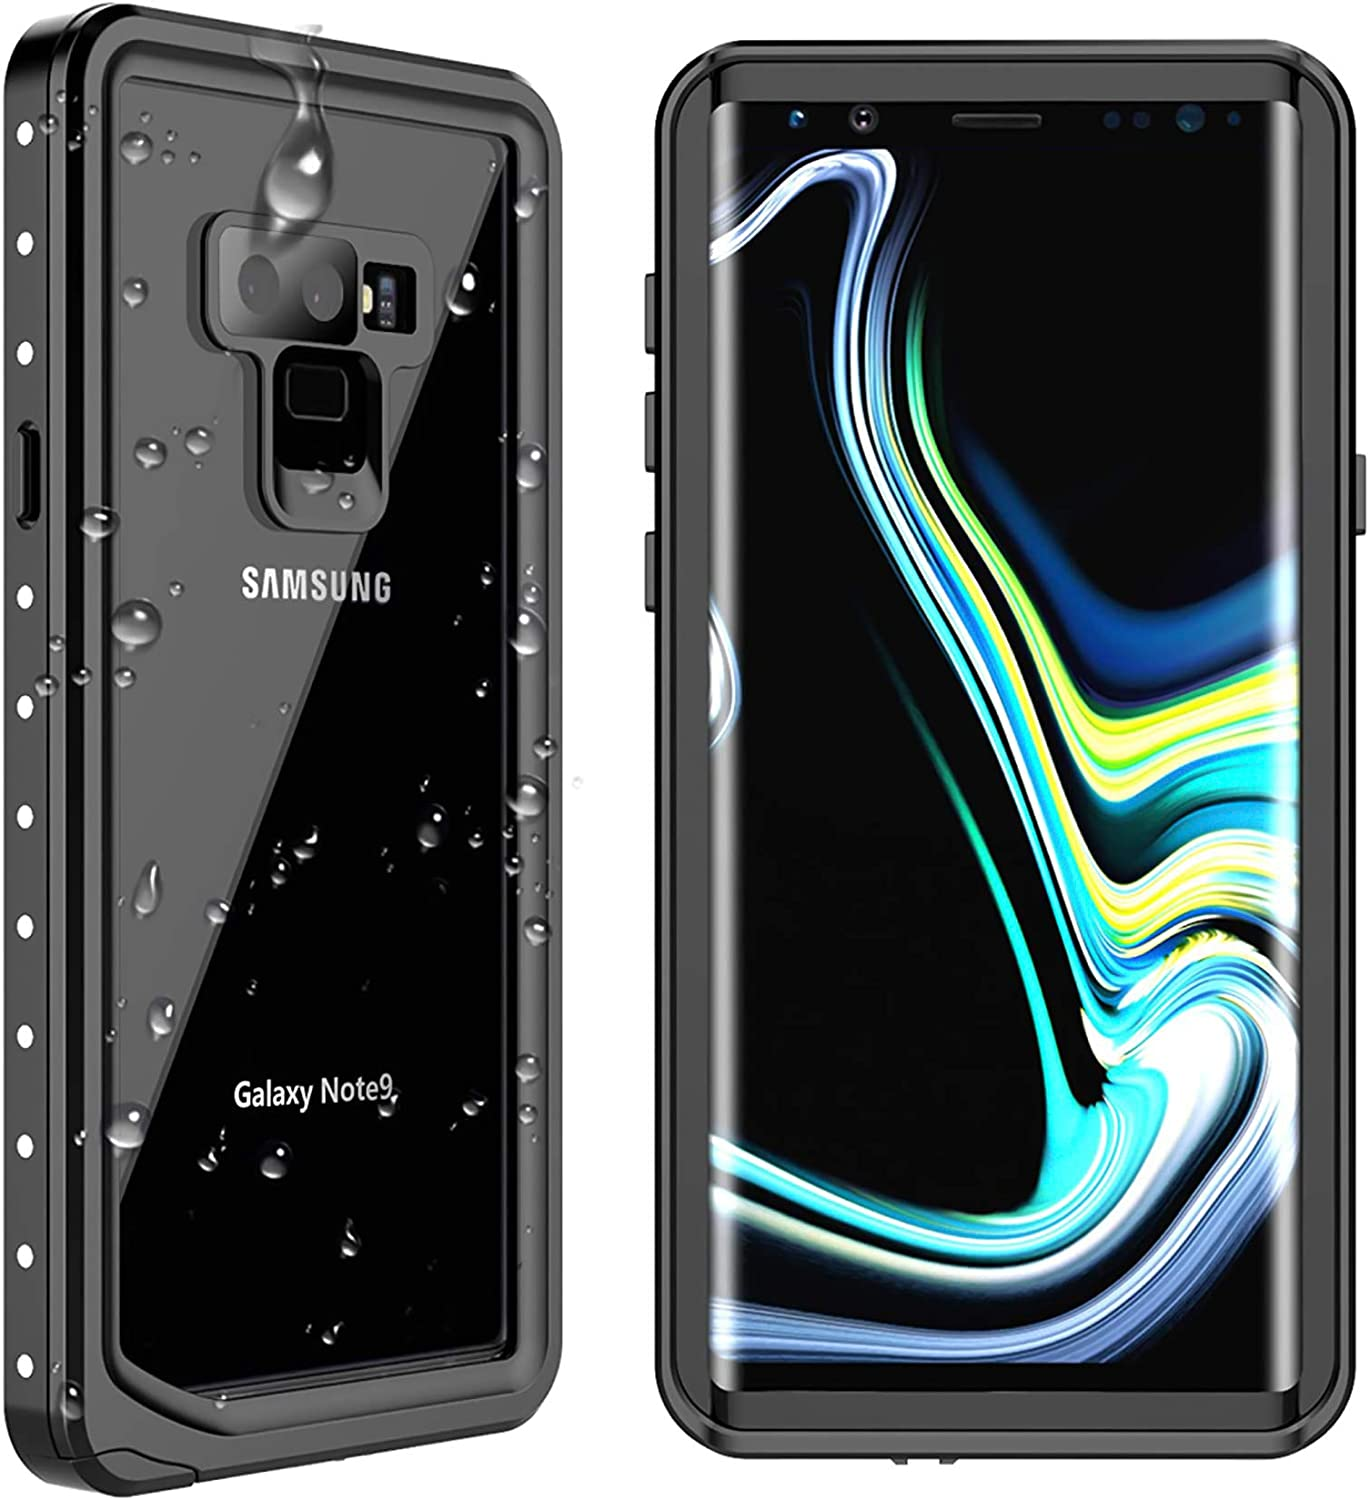 SPIDERCASE for Samsung Galaxy Note 9 Waterproof Case, Shockproof Snowproof Dirtproof, Waterproof Case for Samsung Galaxy Note 9 (Black/Transparent)